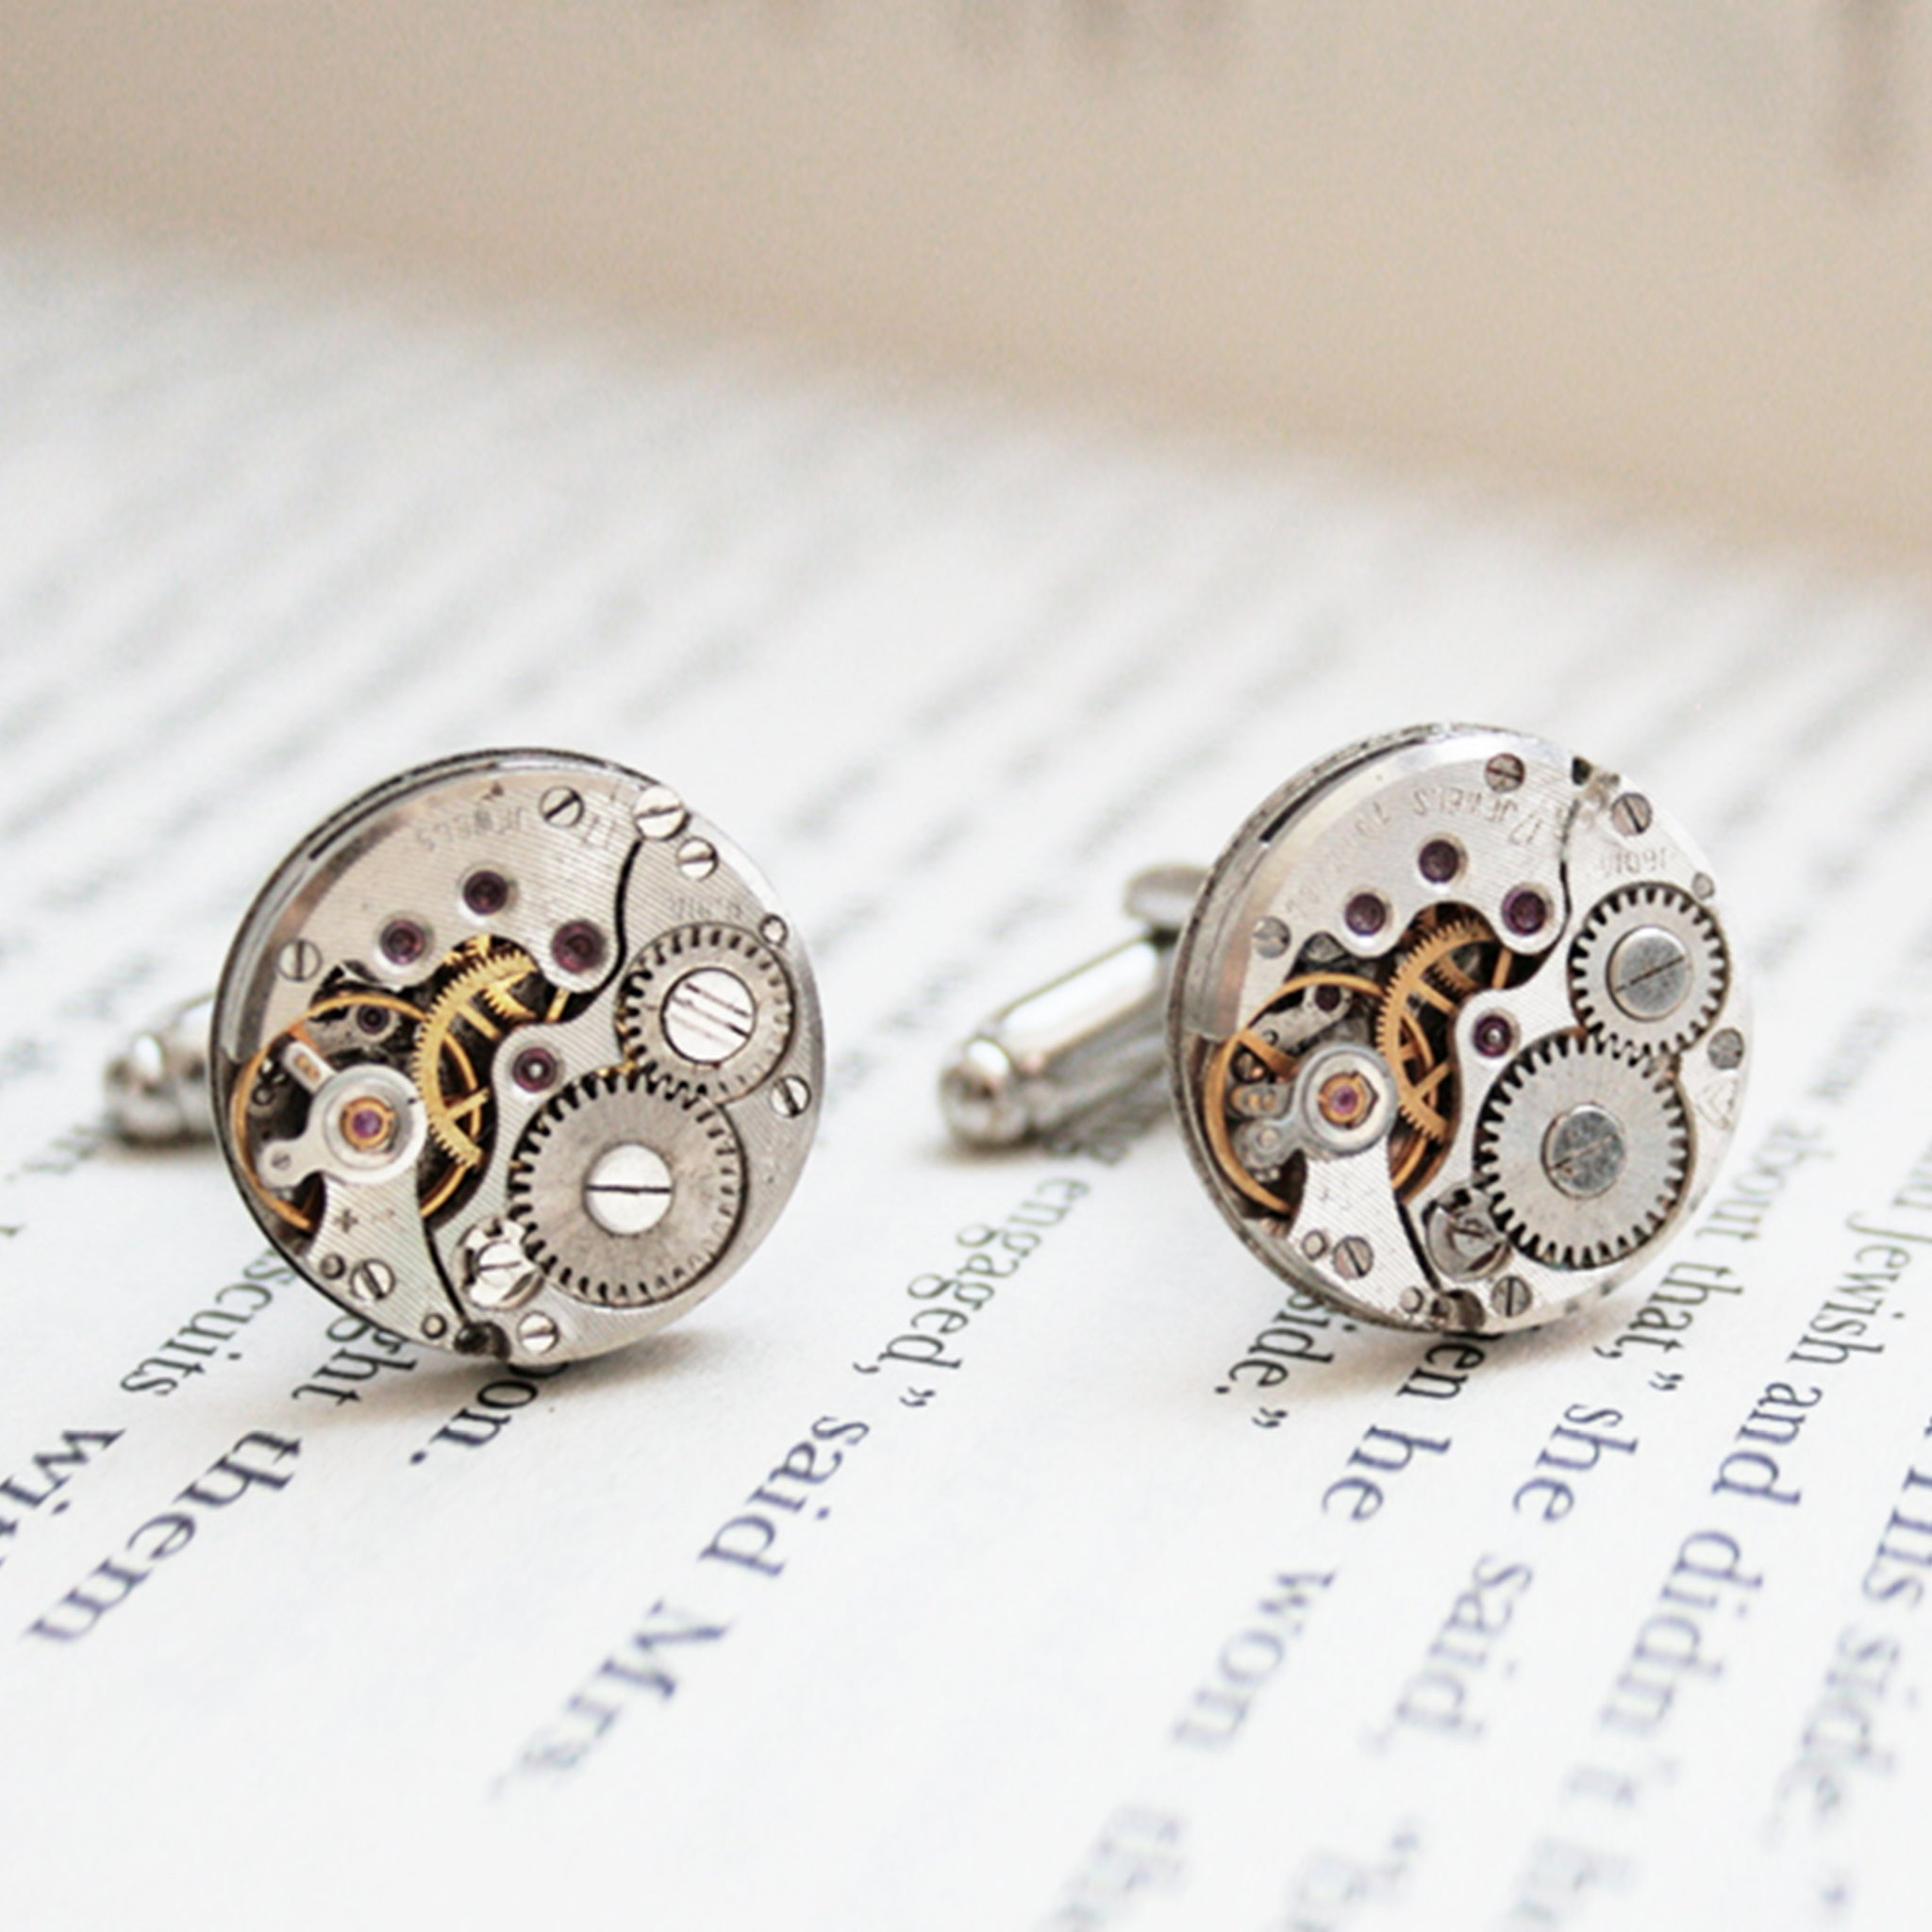 Round watch cufflinks in steampunk style featuring antique watch movements